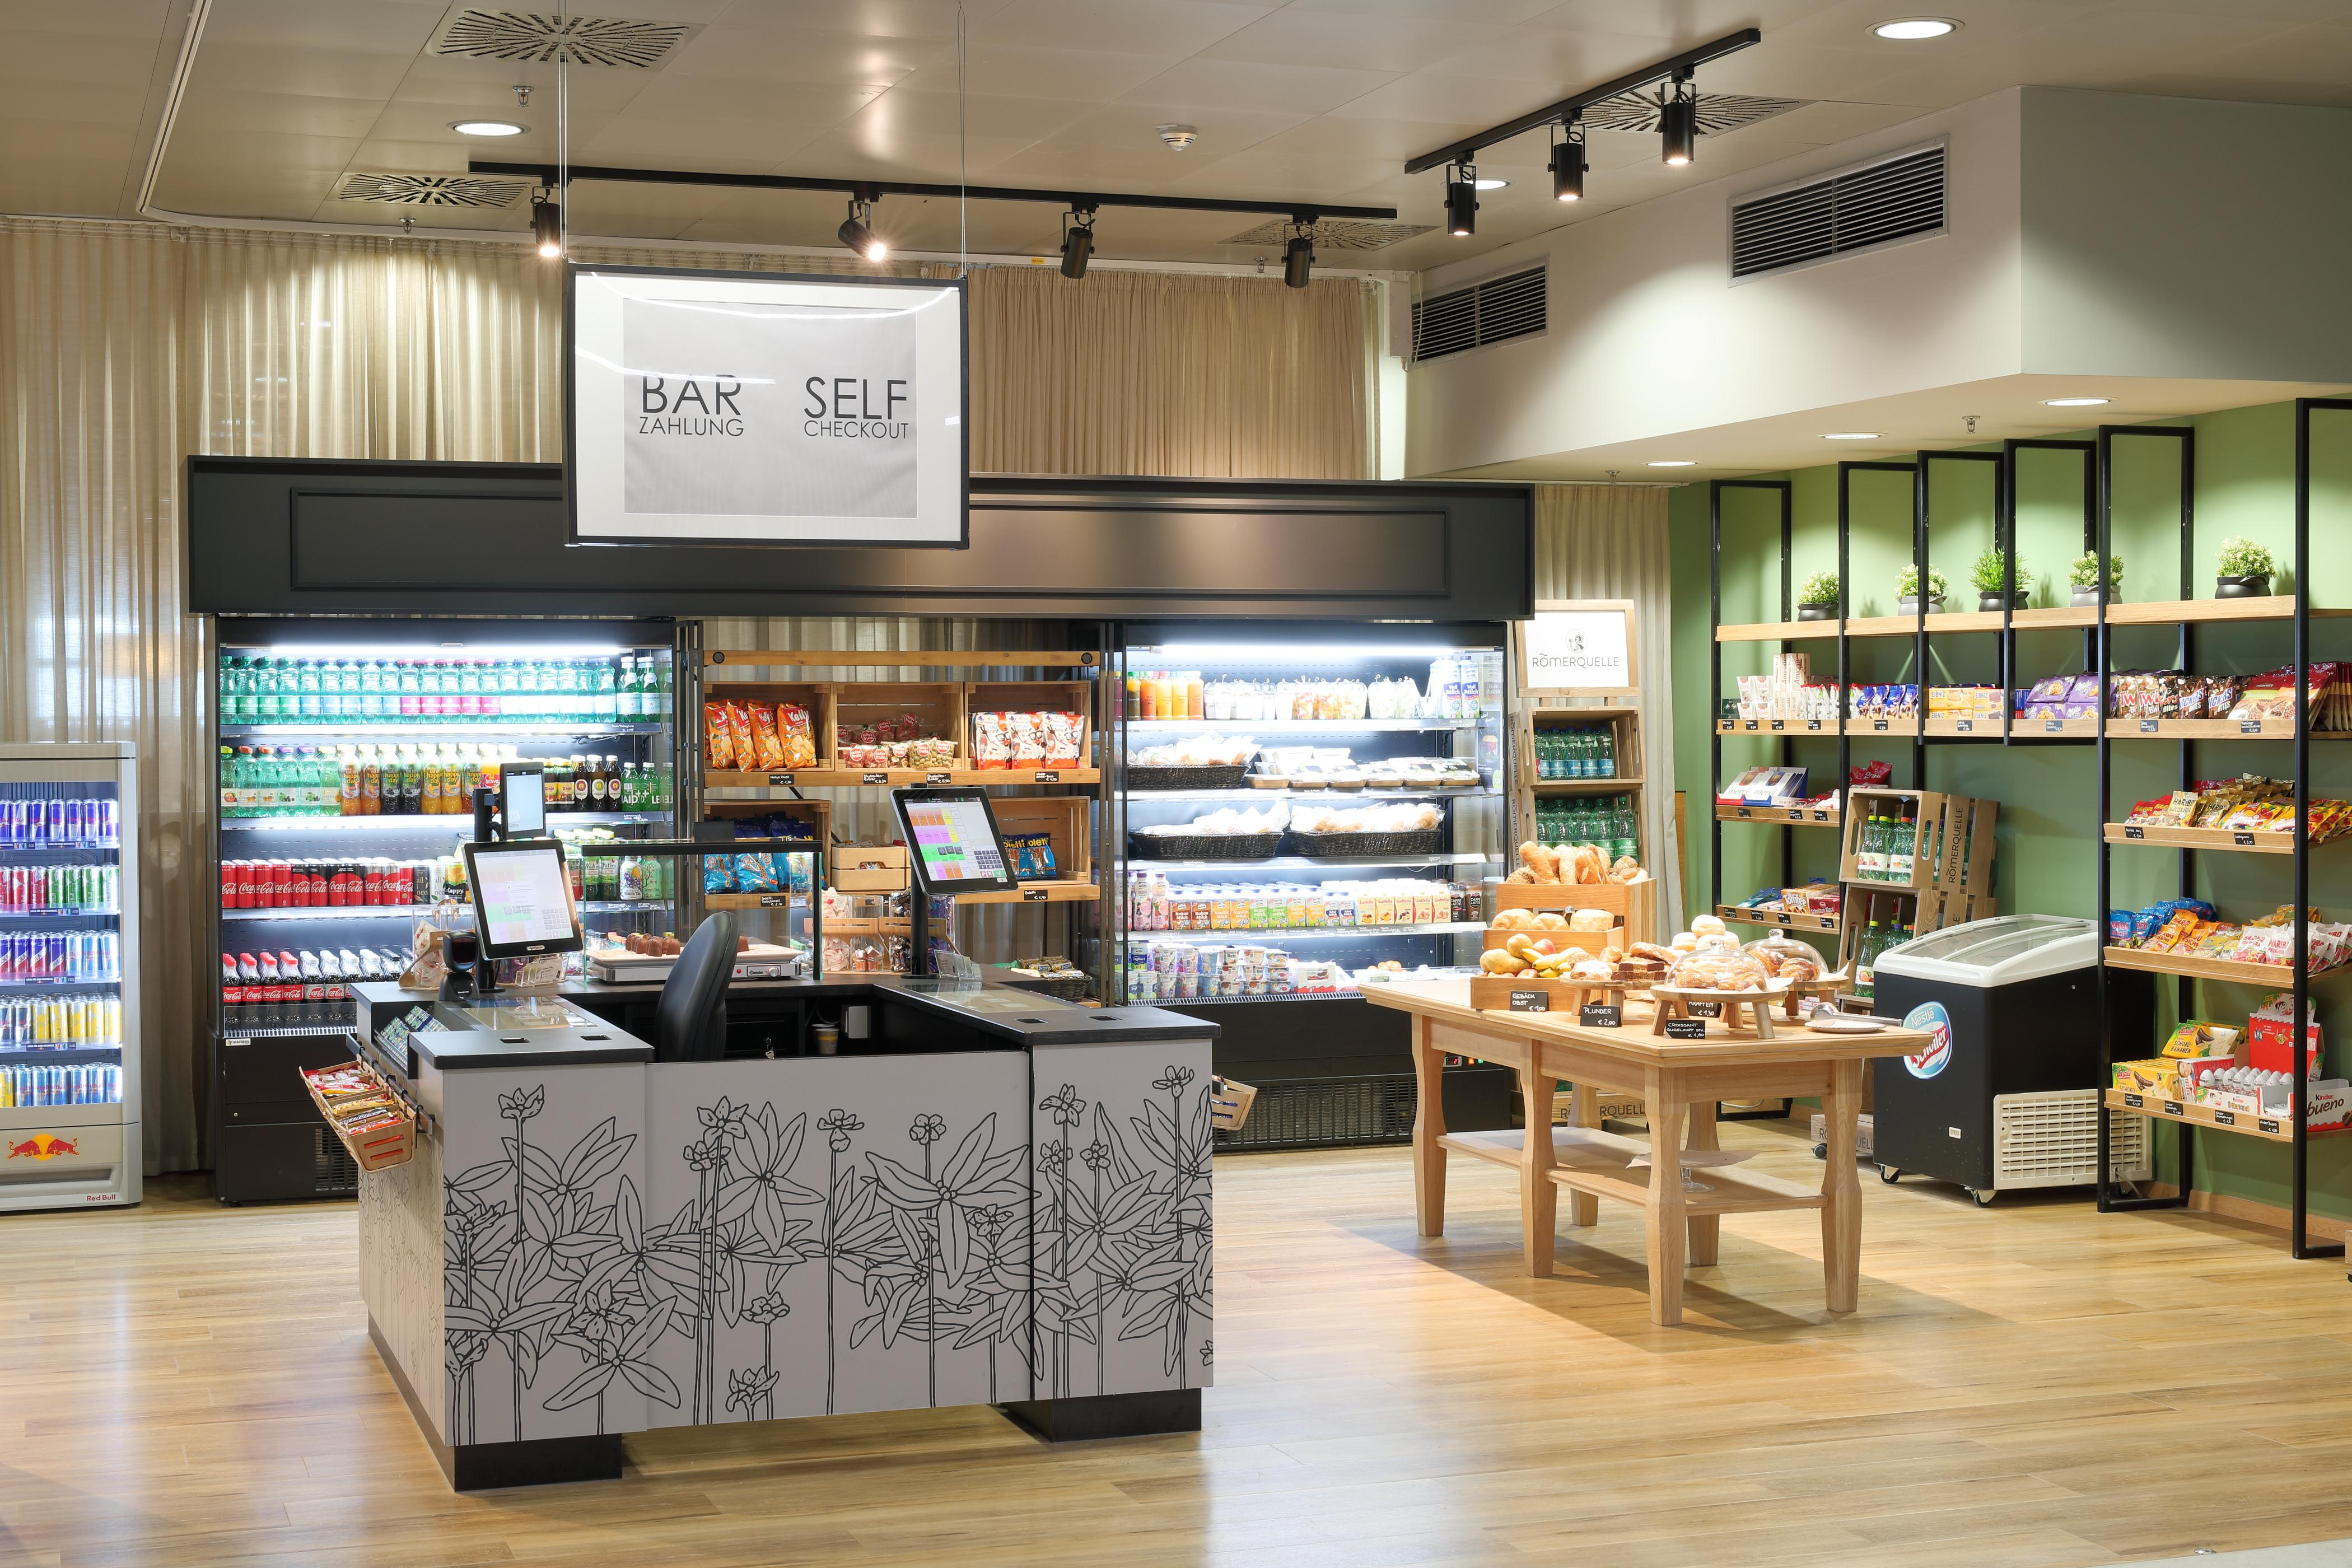 Photo: EURO PLAZA; Restaurant Plaza Eurest; self-service area in a friendly design; modern presentation of products on shelves and in refrigerators.